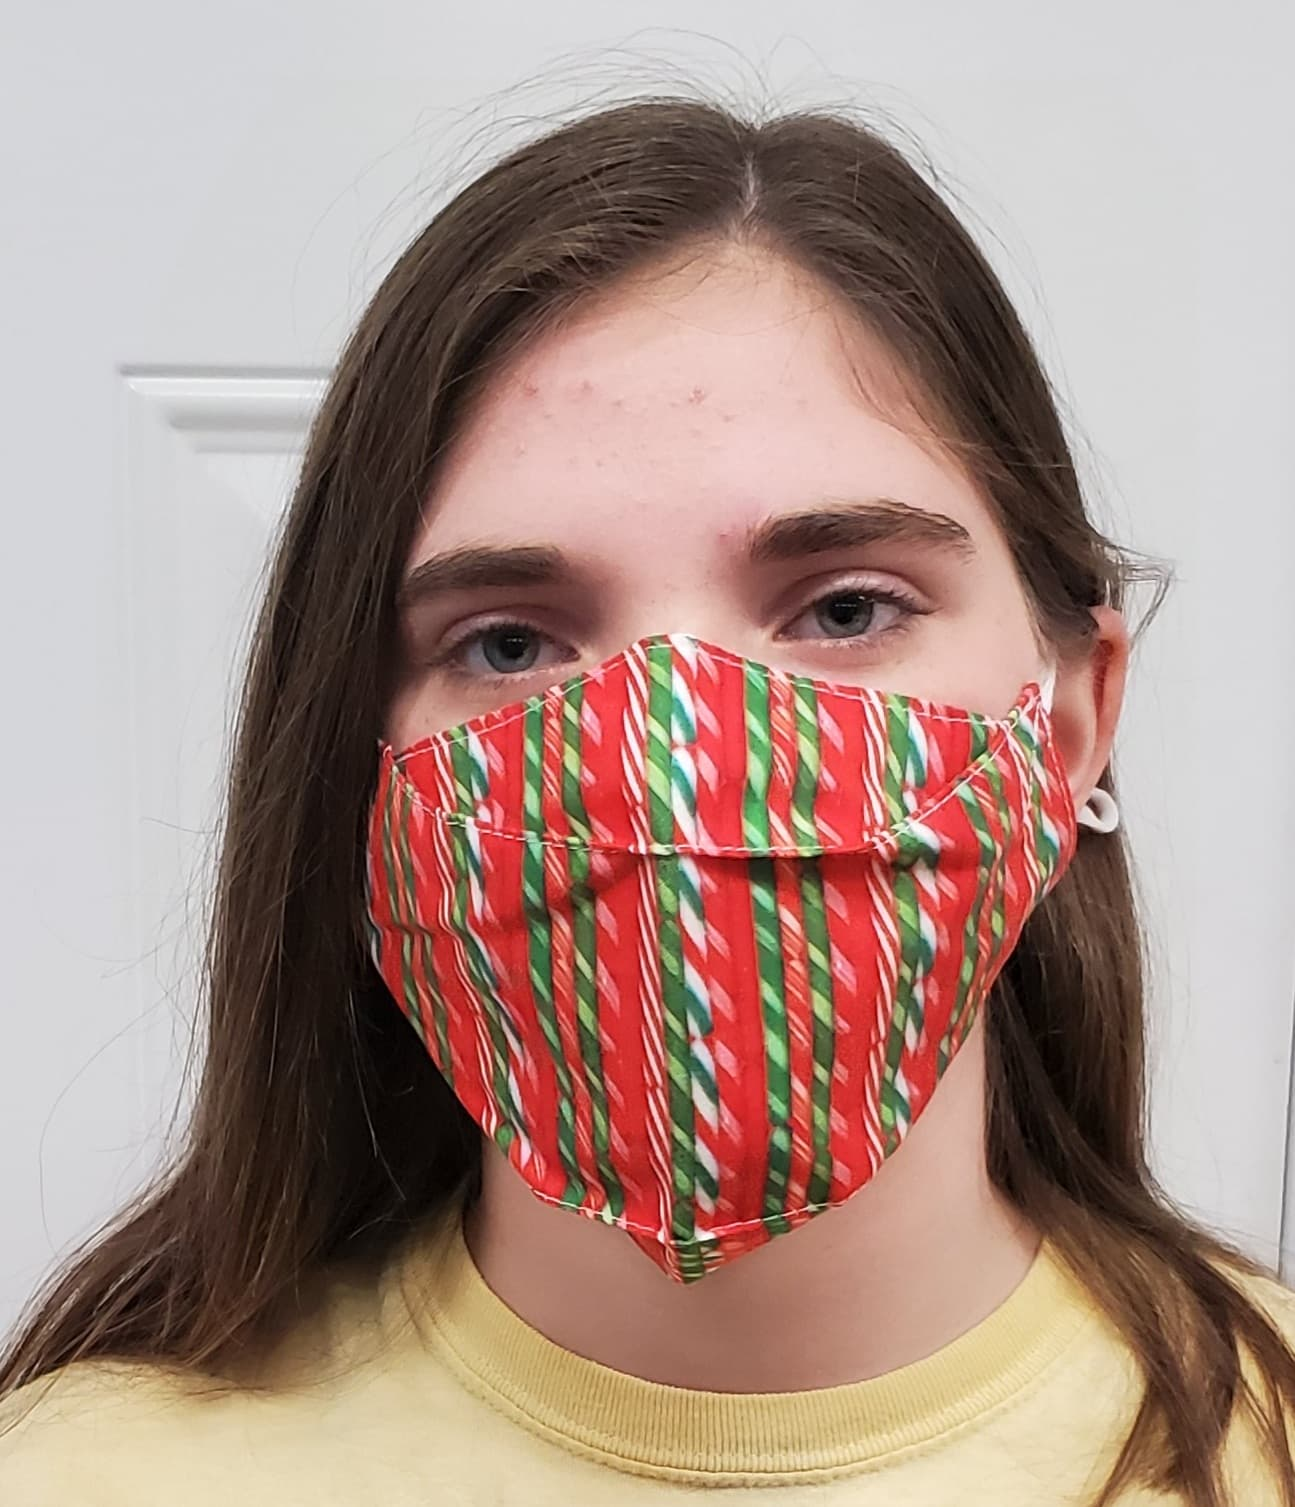 Christmas Candy Cane No Fog Face Mask - Adjustable